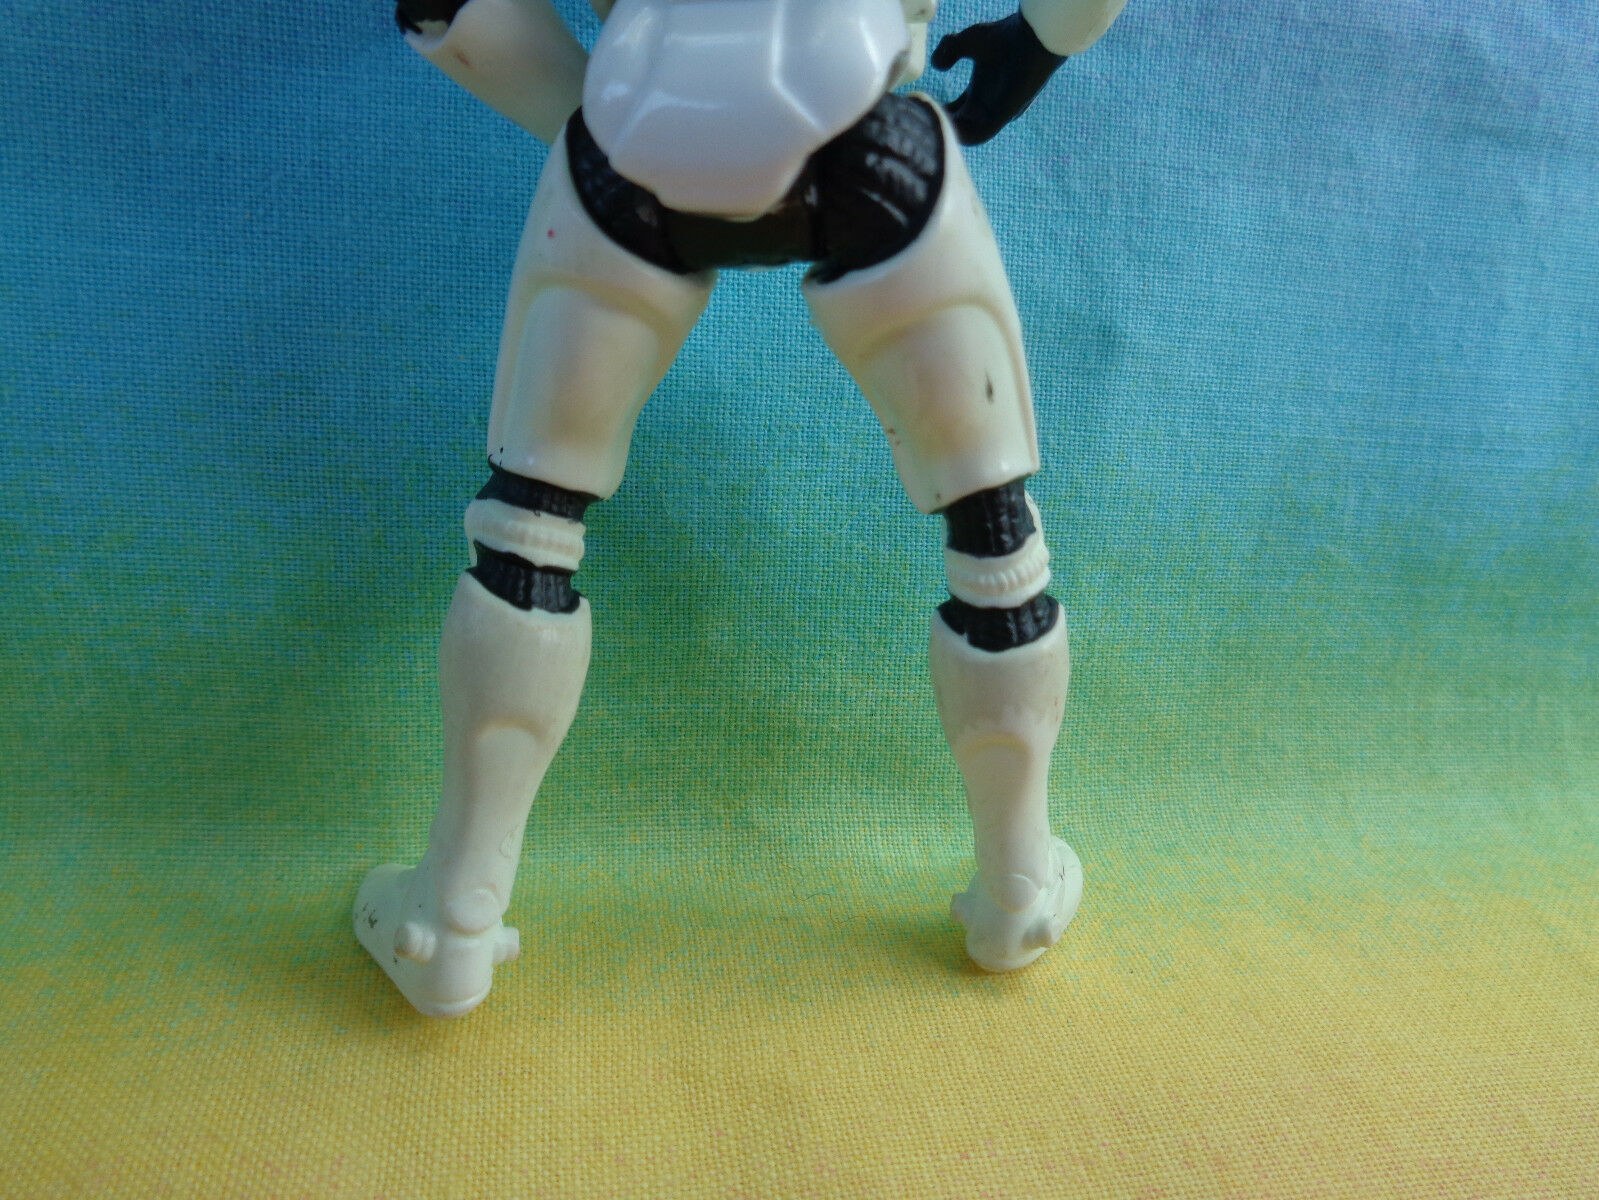 2000 Hasbro Star Wars Clone Trooper Action Figure - as is image 7